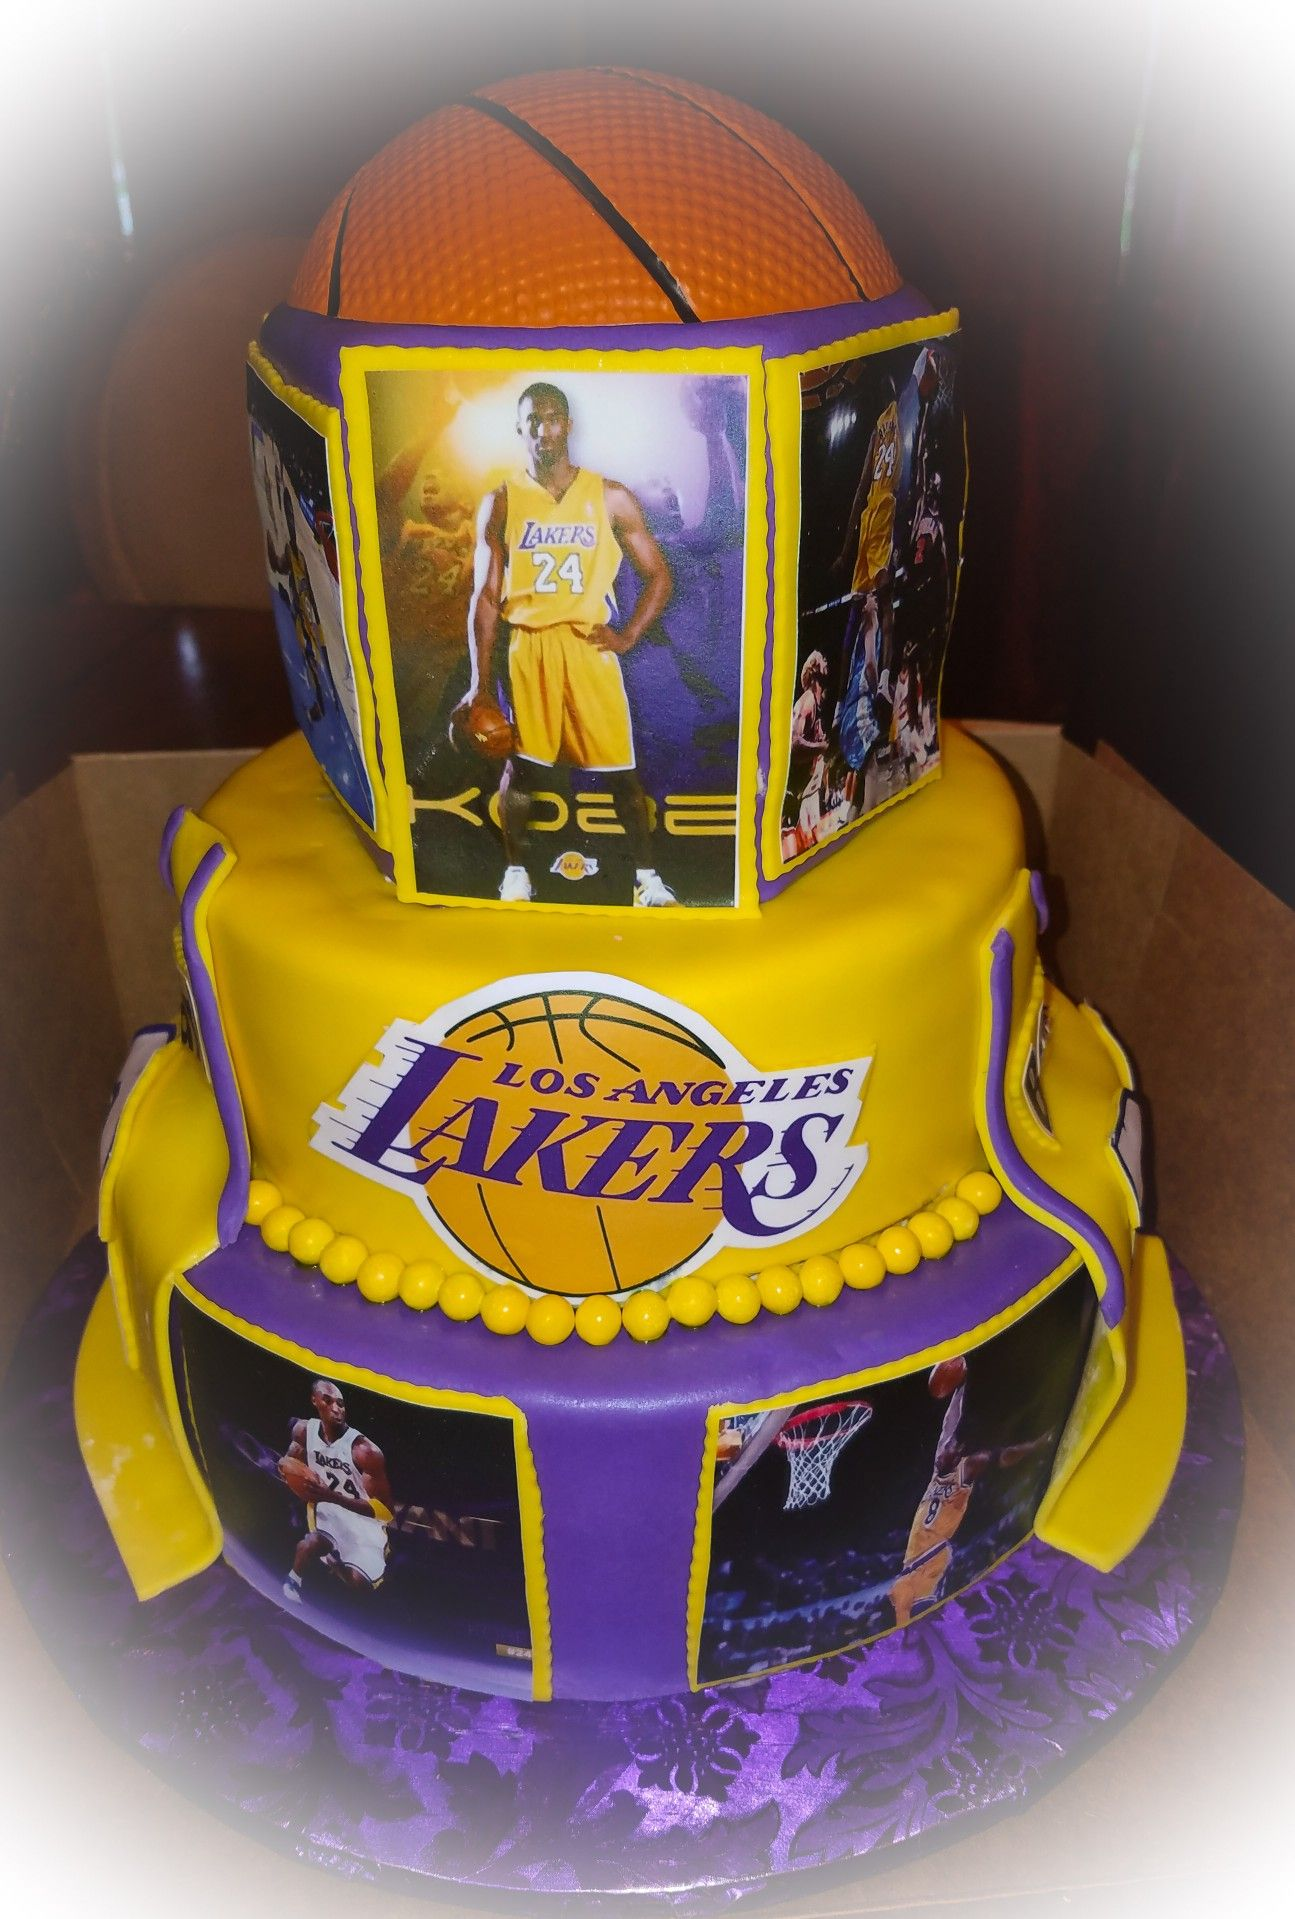 Kobe & lakers cake Birthday surprise party, Basketball